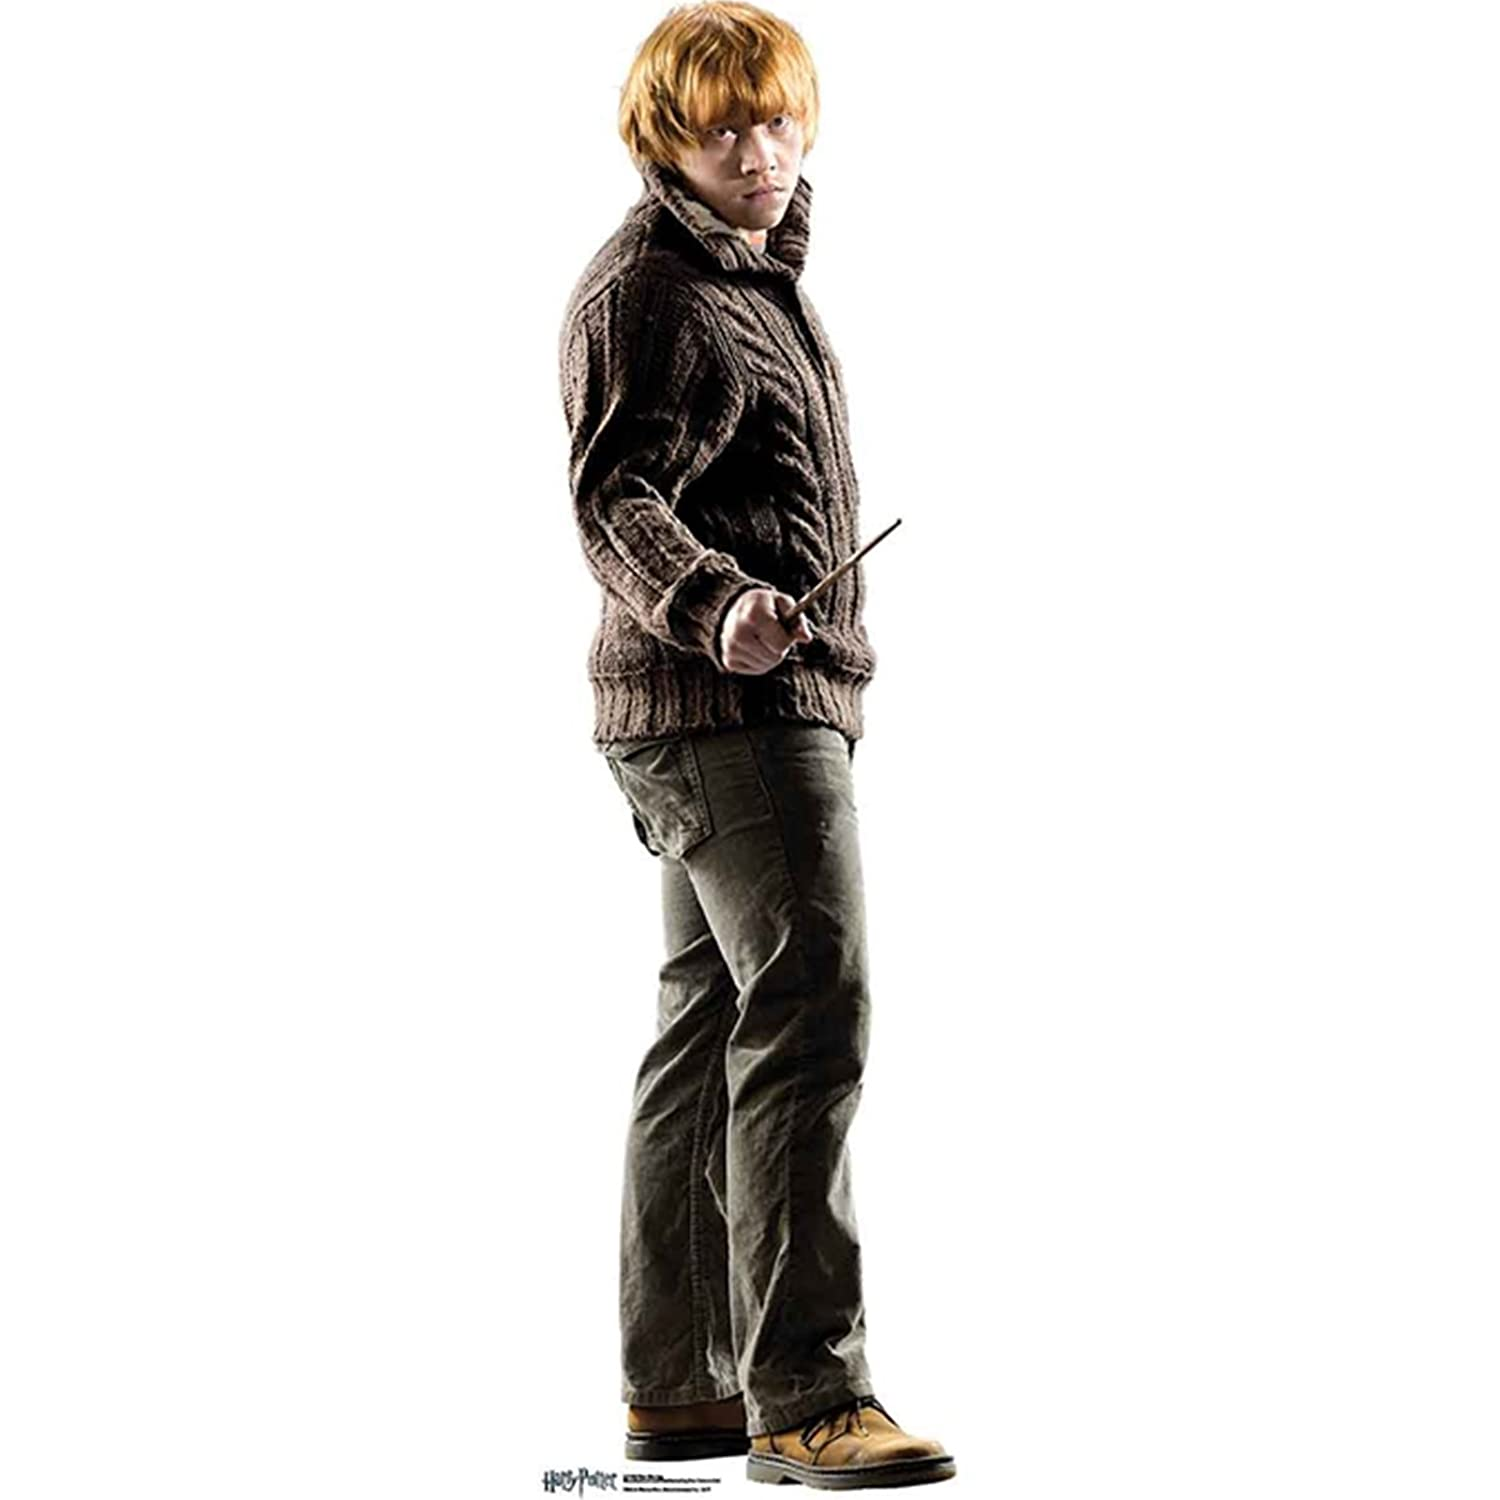 From the Official Harry Potter Books Star Cutouts Mini Cardboard Cutout of Ron Weasley 92 cm Tall STAR CUTOUTS LTD SC1963